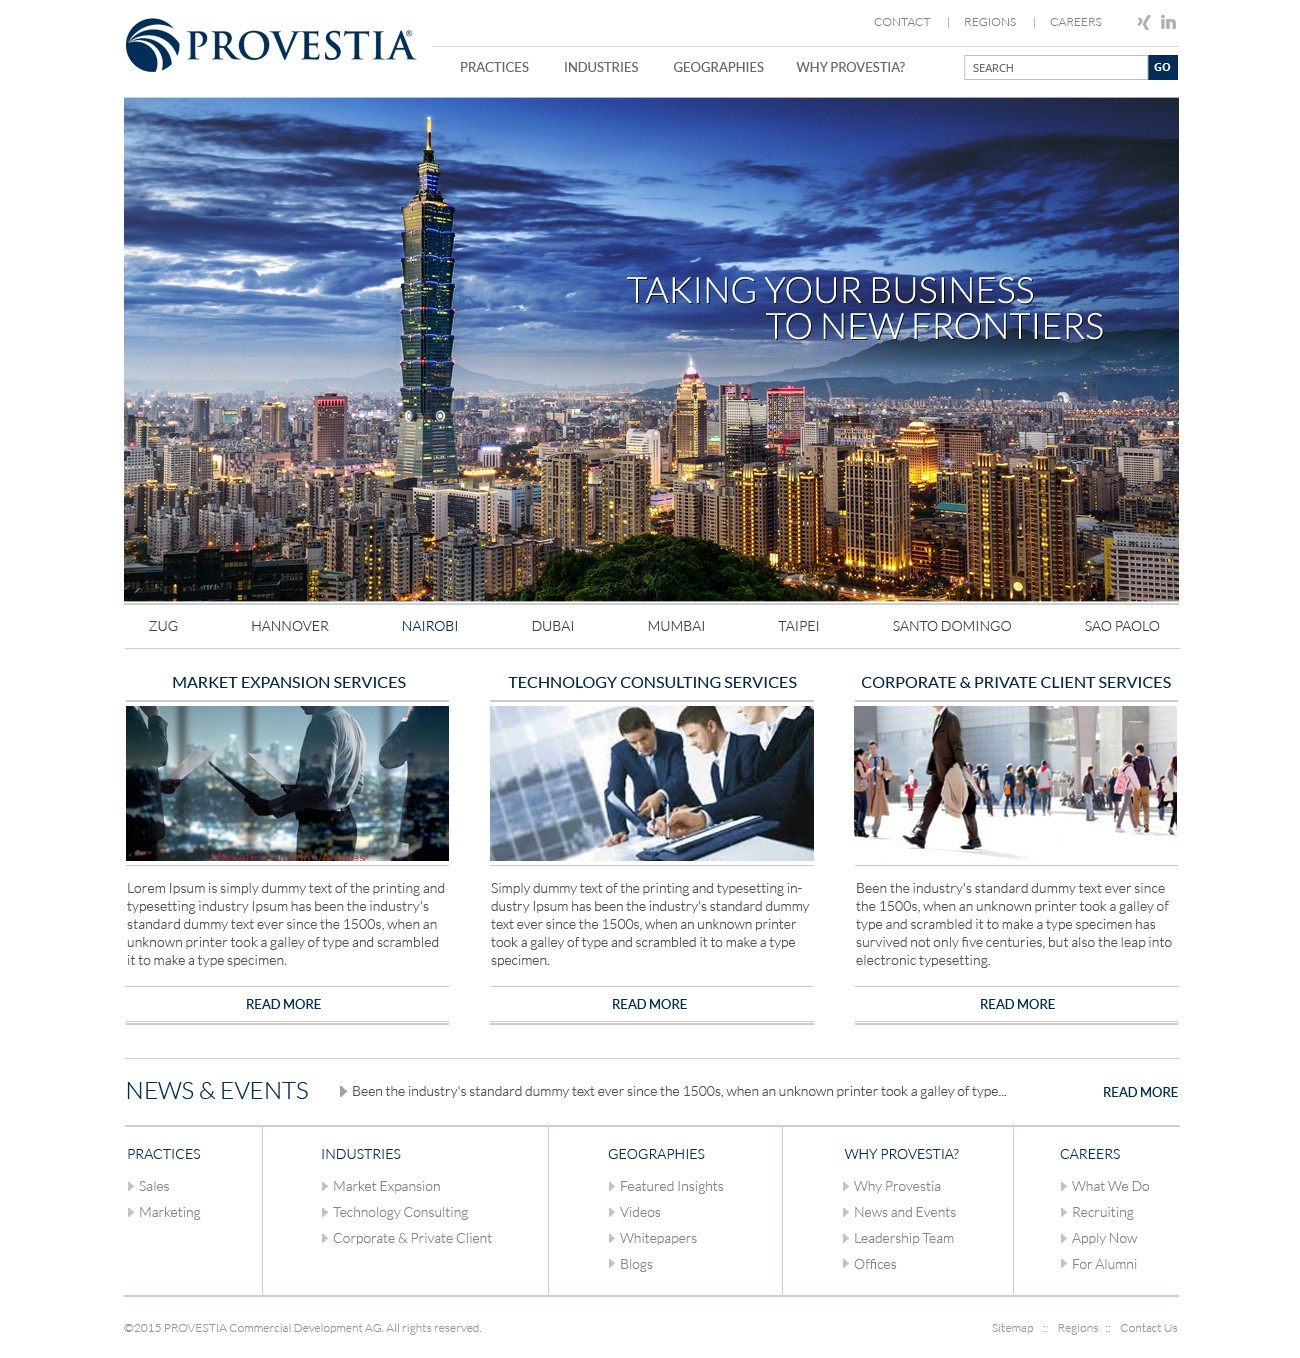 Give us a great Website for PROVESTIA